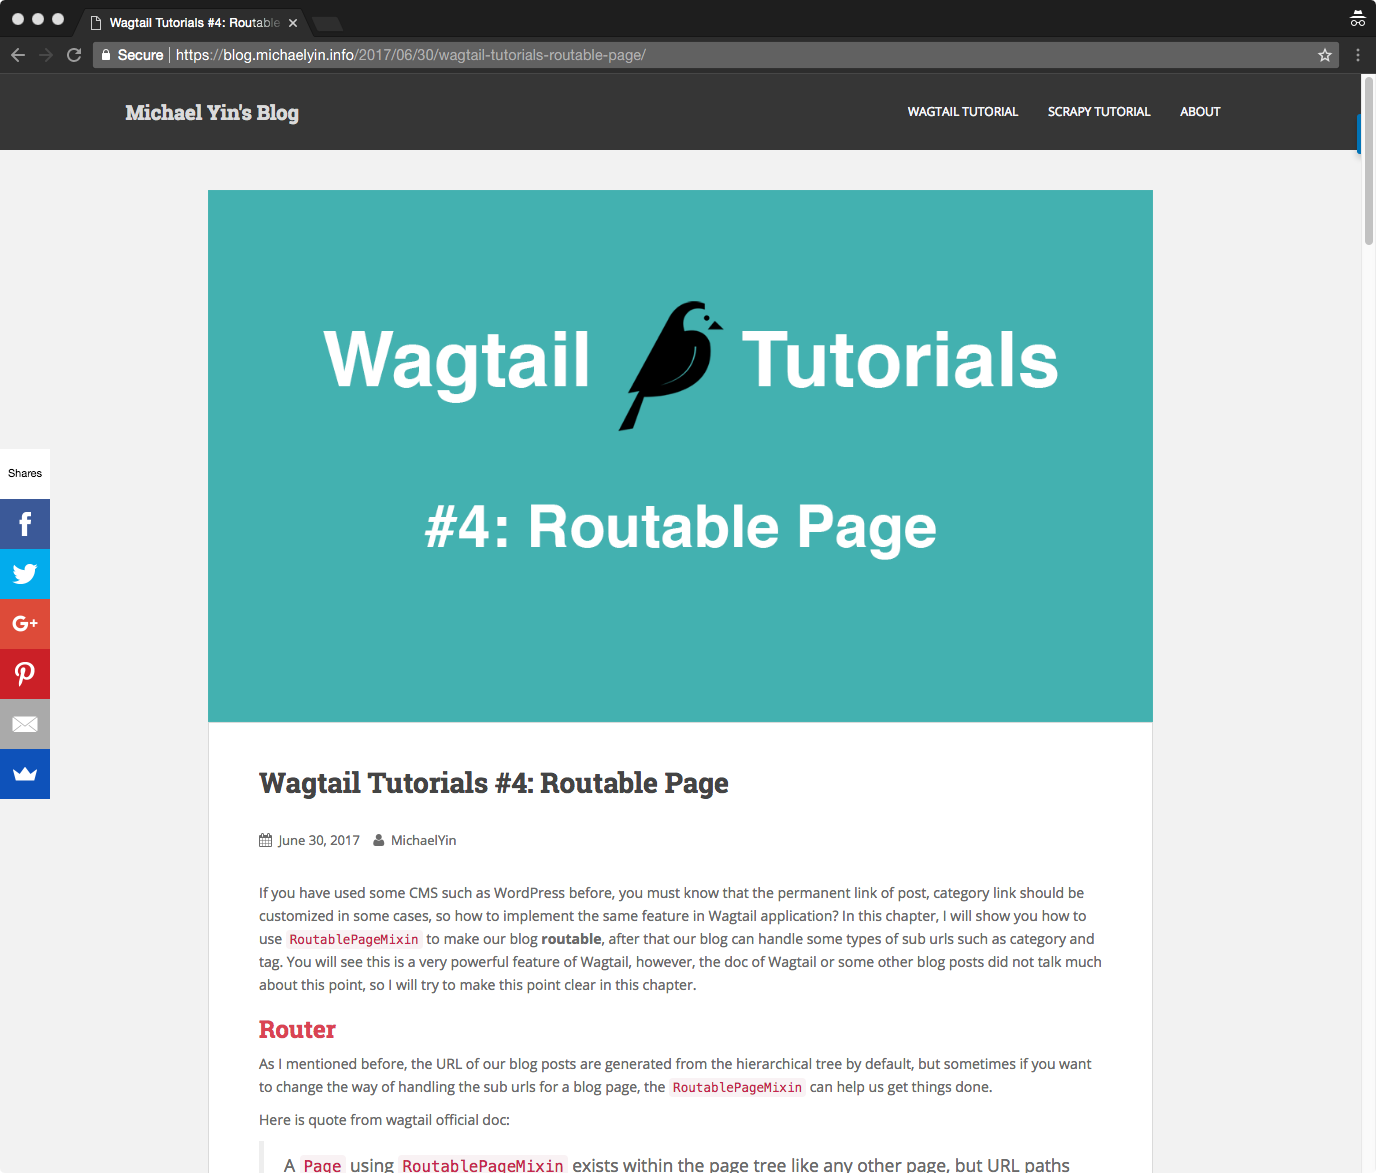 Wagtail tutorial